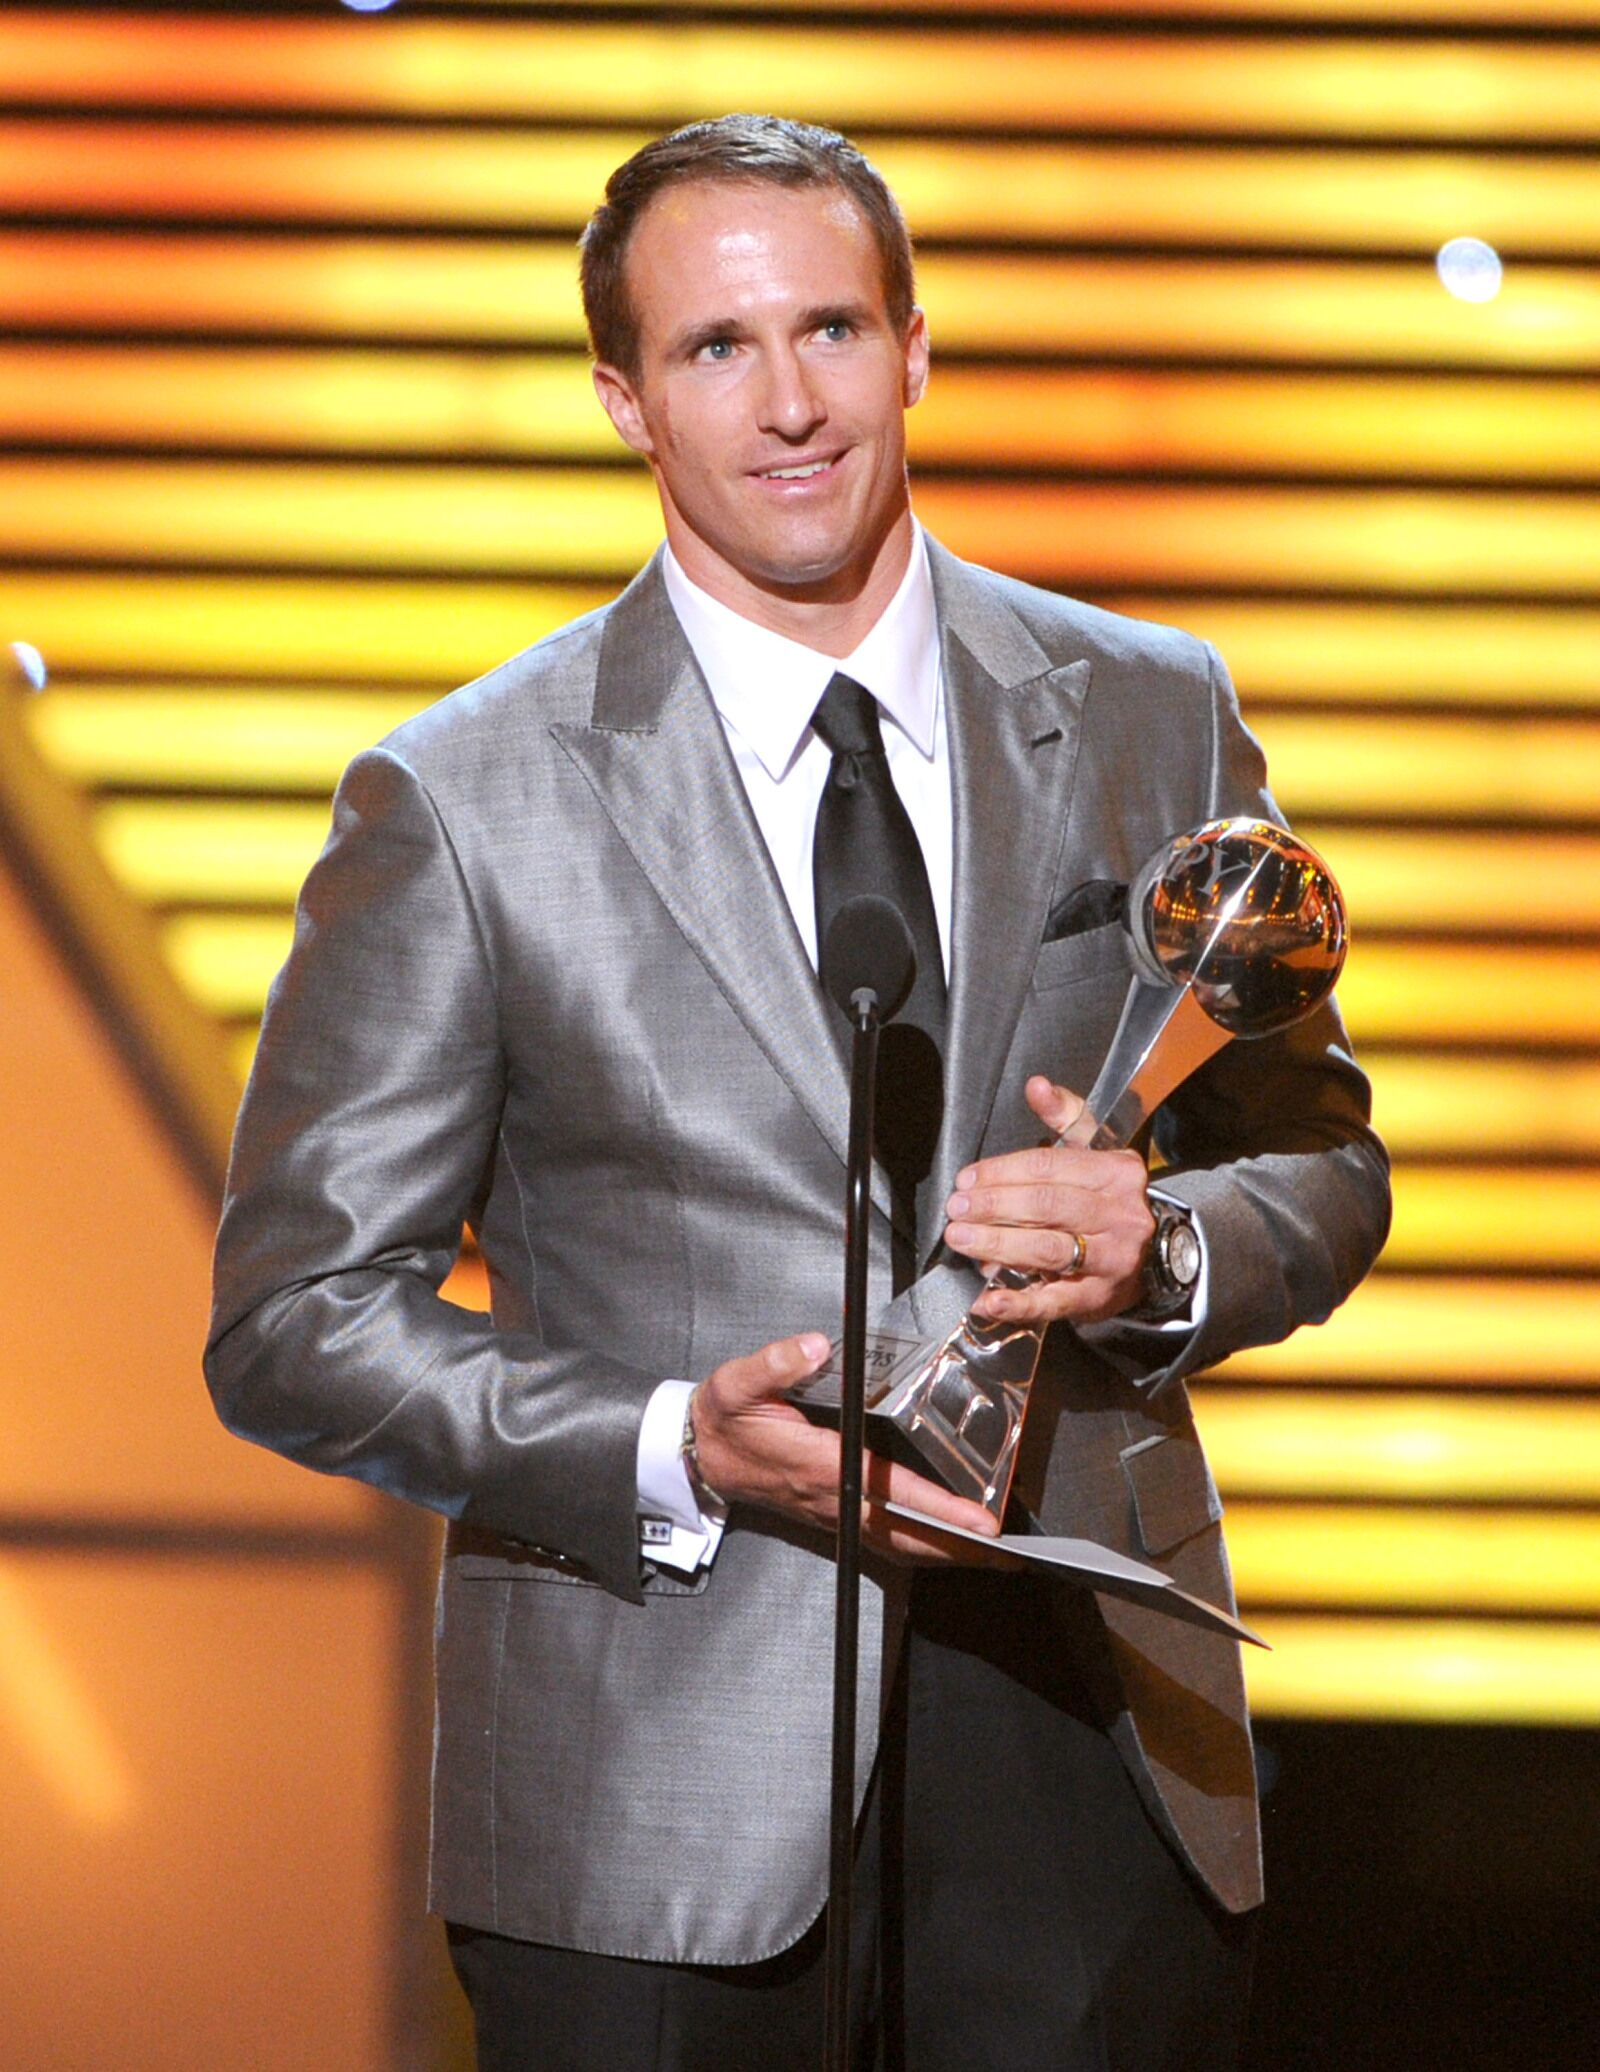 Drew Brees and his history with the ESPYS